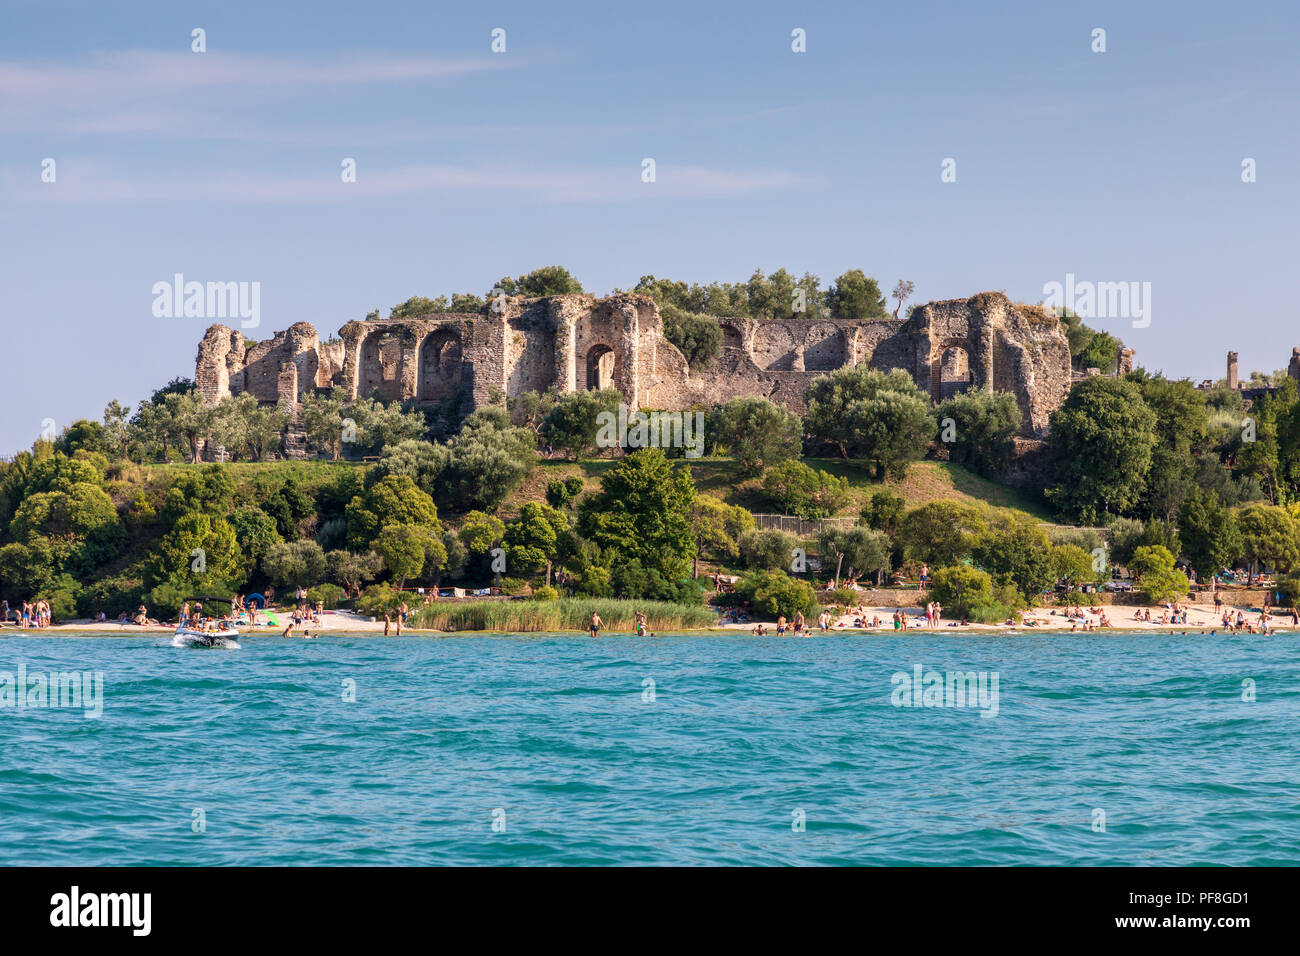 The  Grotto of Catullo ruined Roman villas near Sirmione.  Taken from Lake Garda.  The Grottoes of Catullus - Stock Image